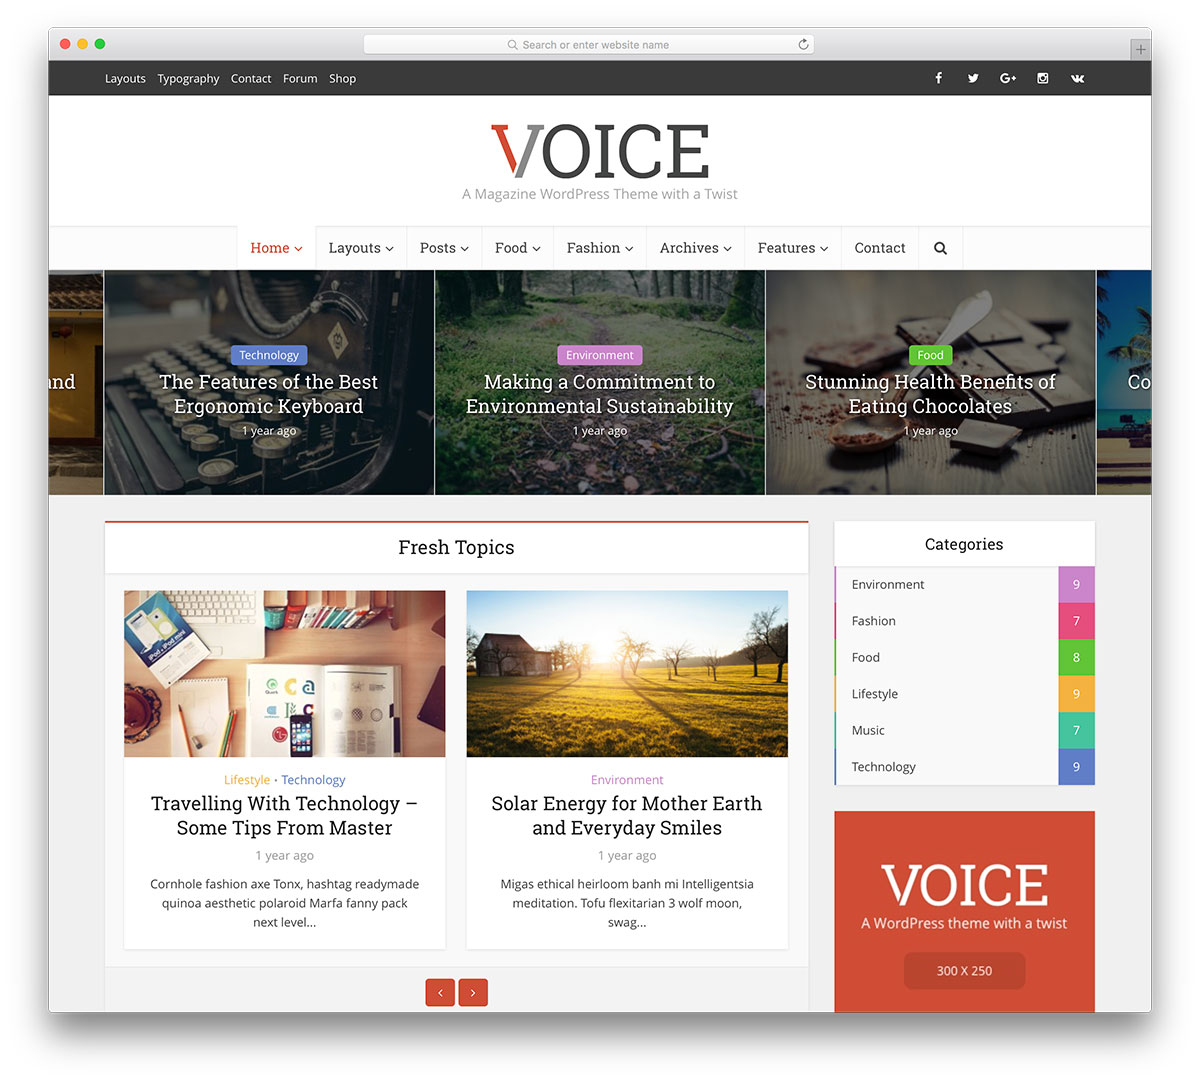 22 content focused free magazine website templates.